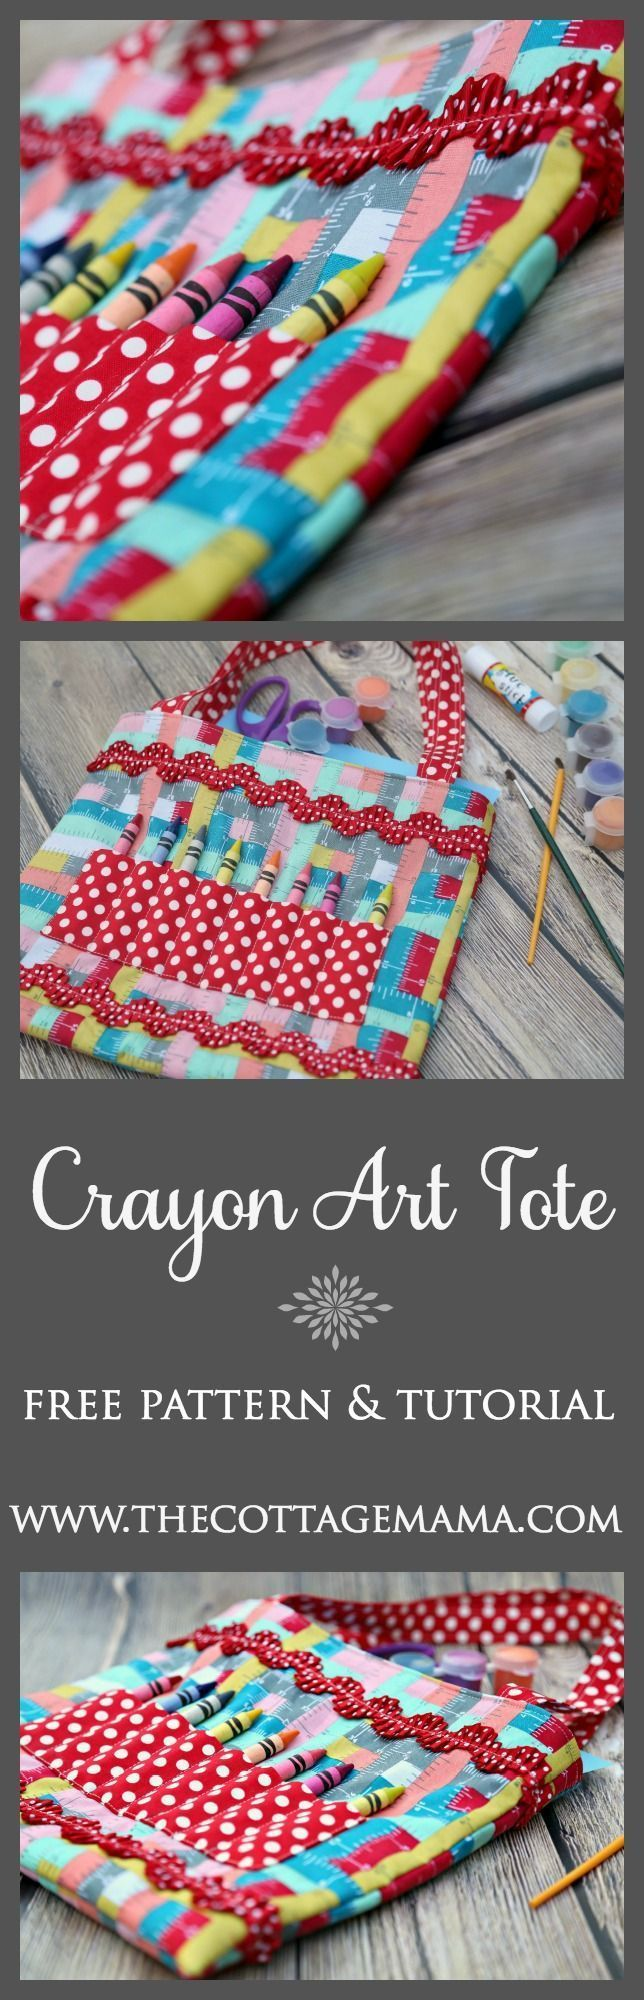 Free Crayon Art Tote Sewing Pattern and Tutorial from The Cottage Mama.  www.thecottagemama